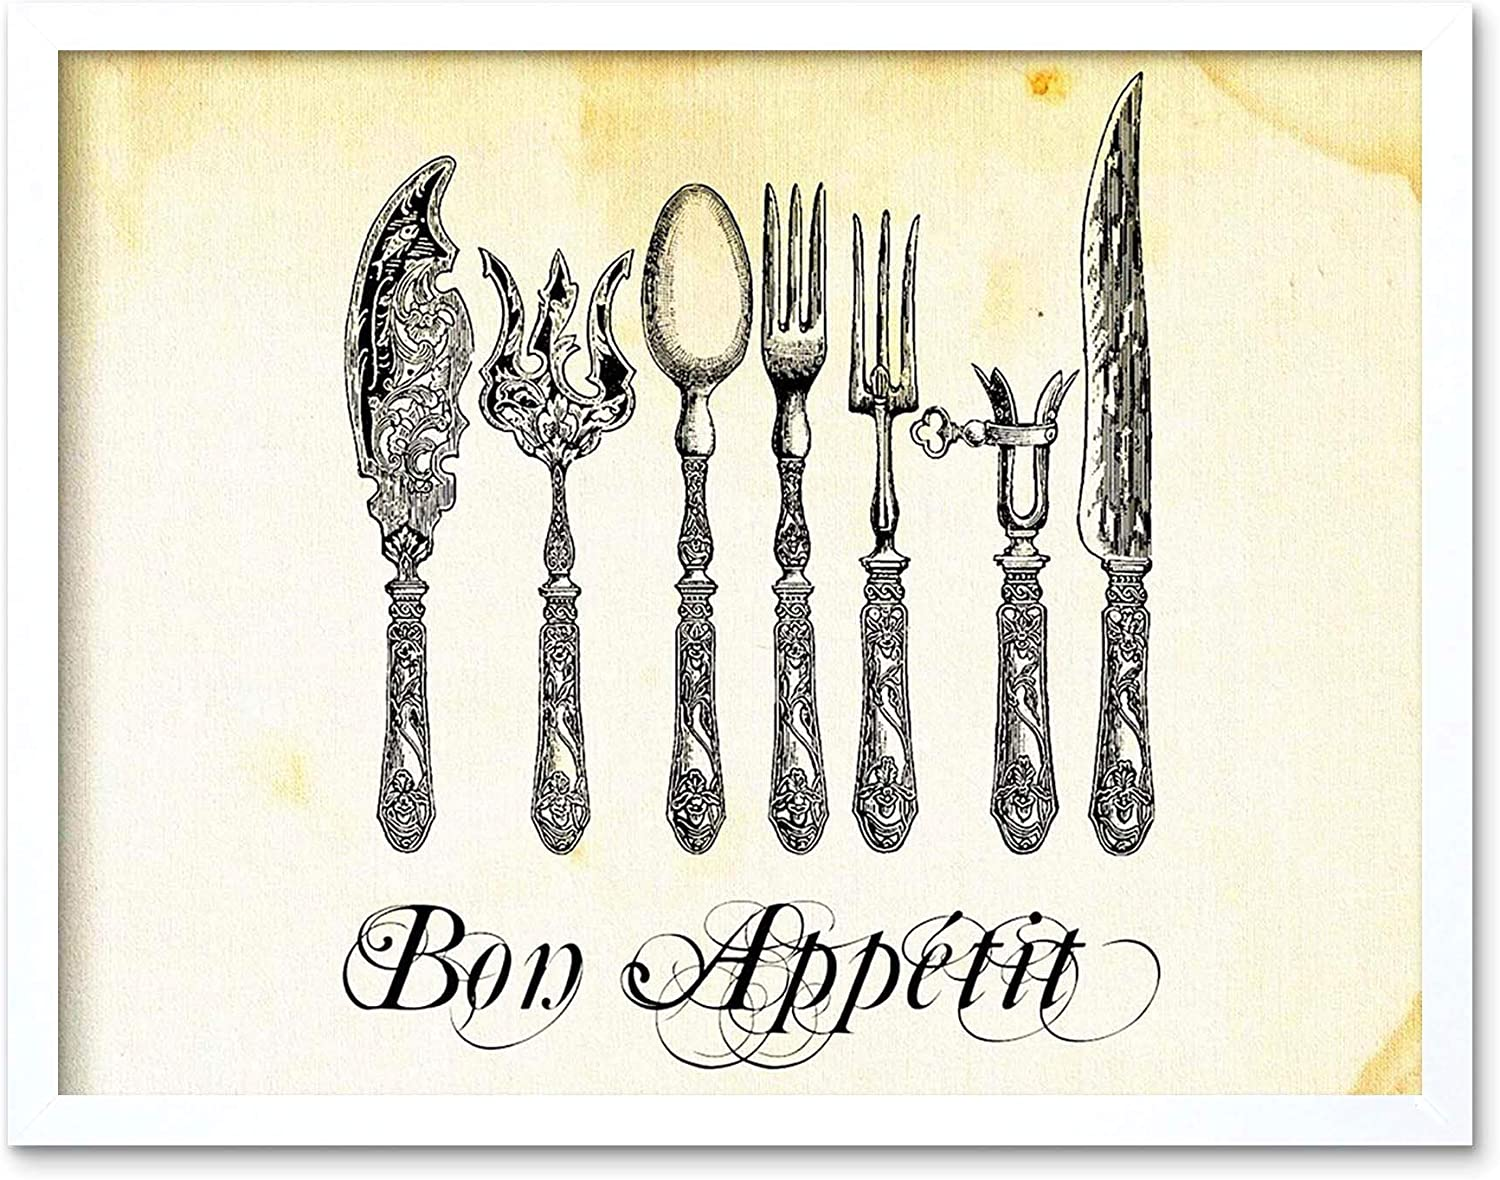 Wee Blue Coo Painting Drawing Sketch Cutlery Silver Bon Appetit Fork Knife Spoon Ornate Art Print Framed Poster Decor Art Print Framed Poster Wall Decor 12x16 inch